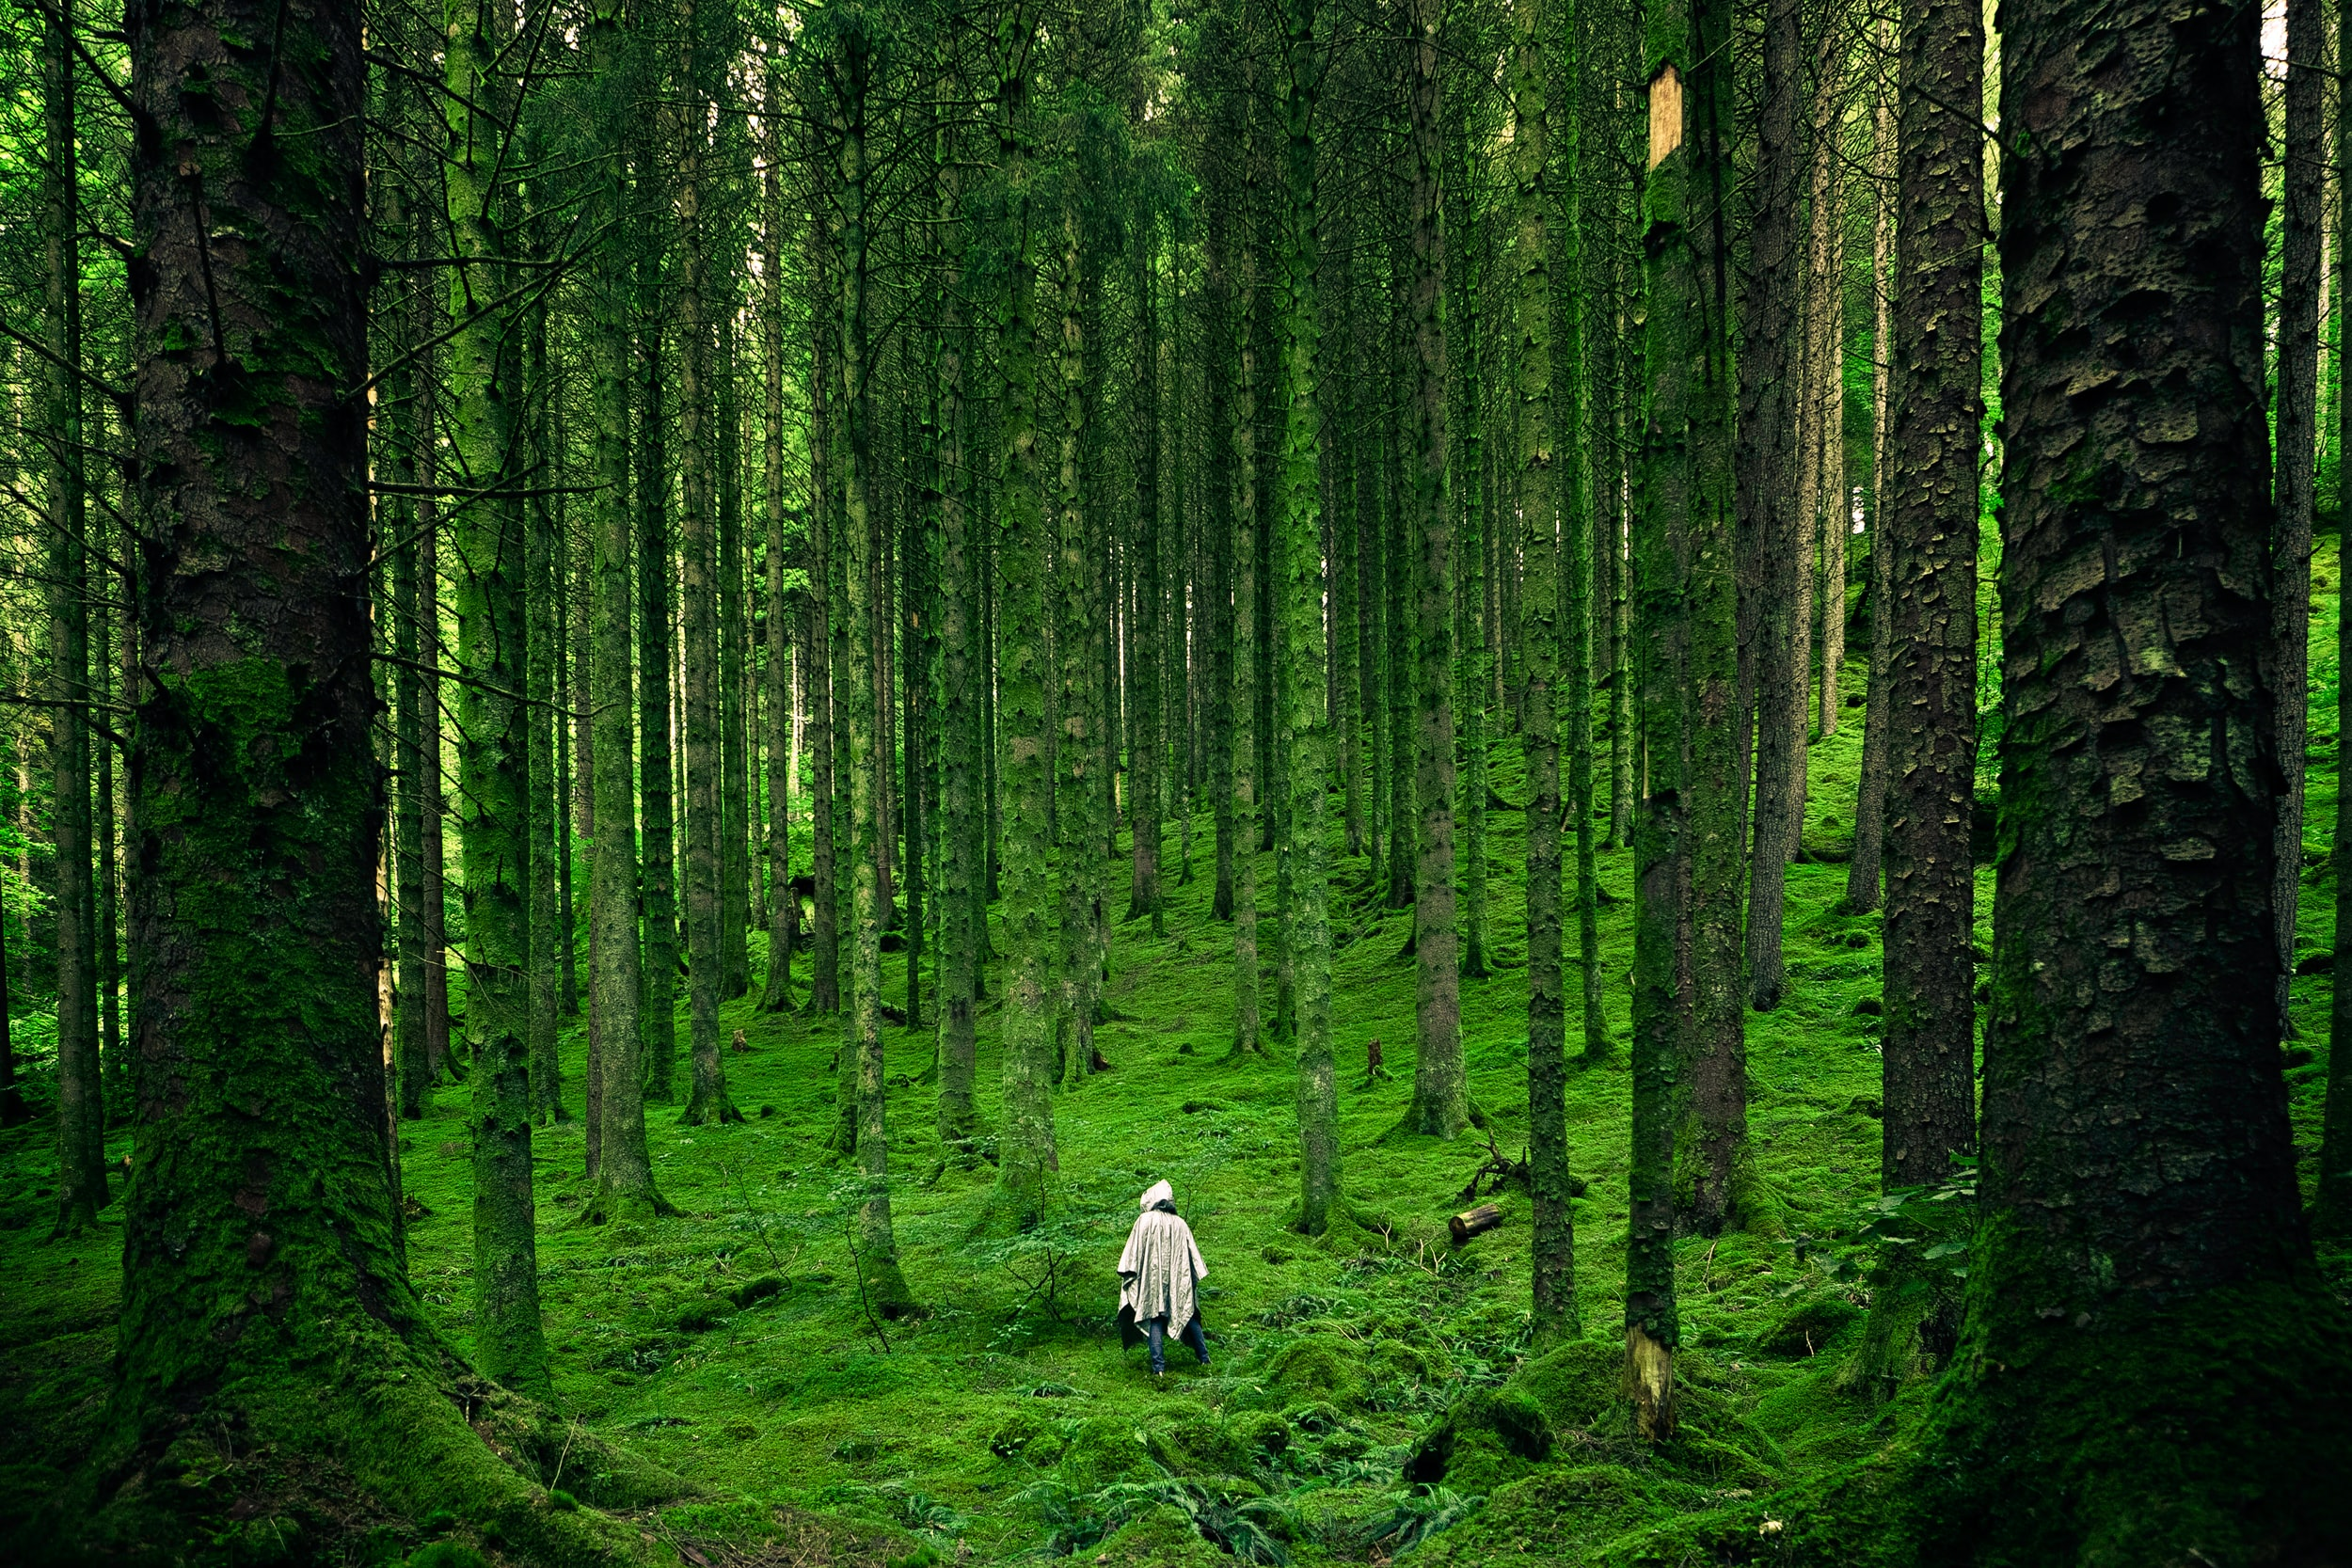 person in forest